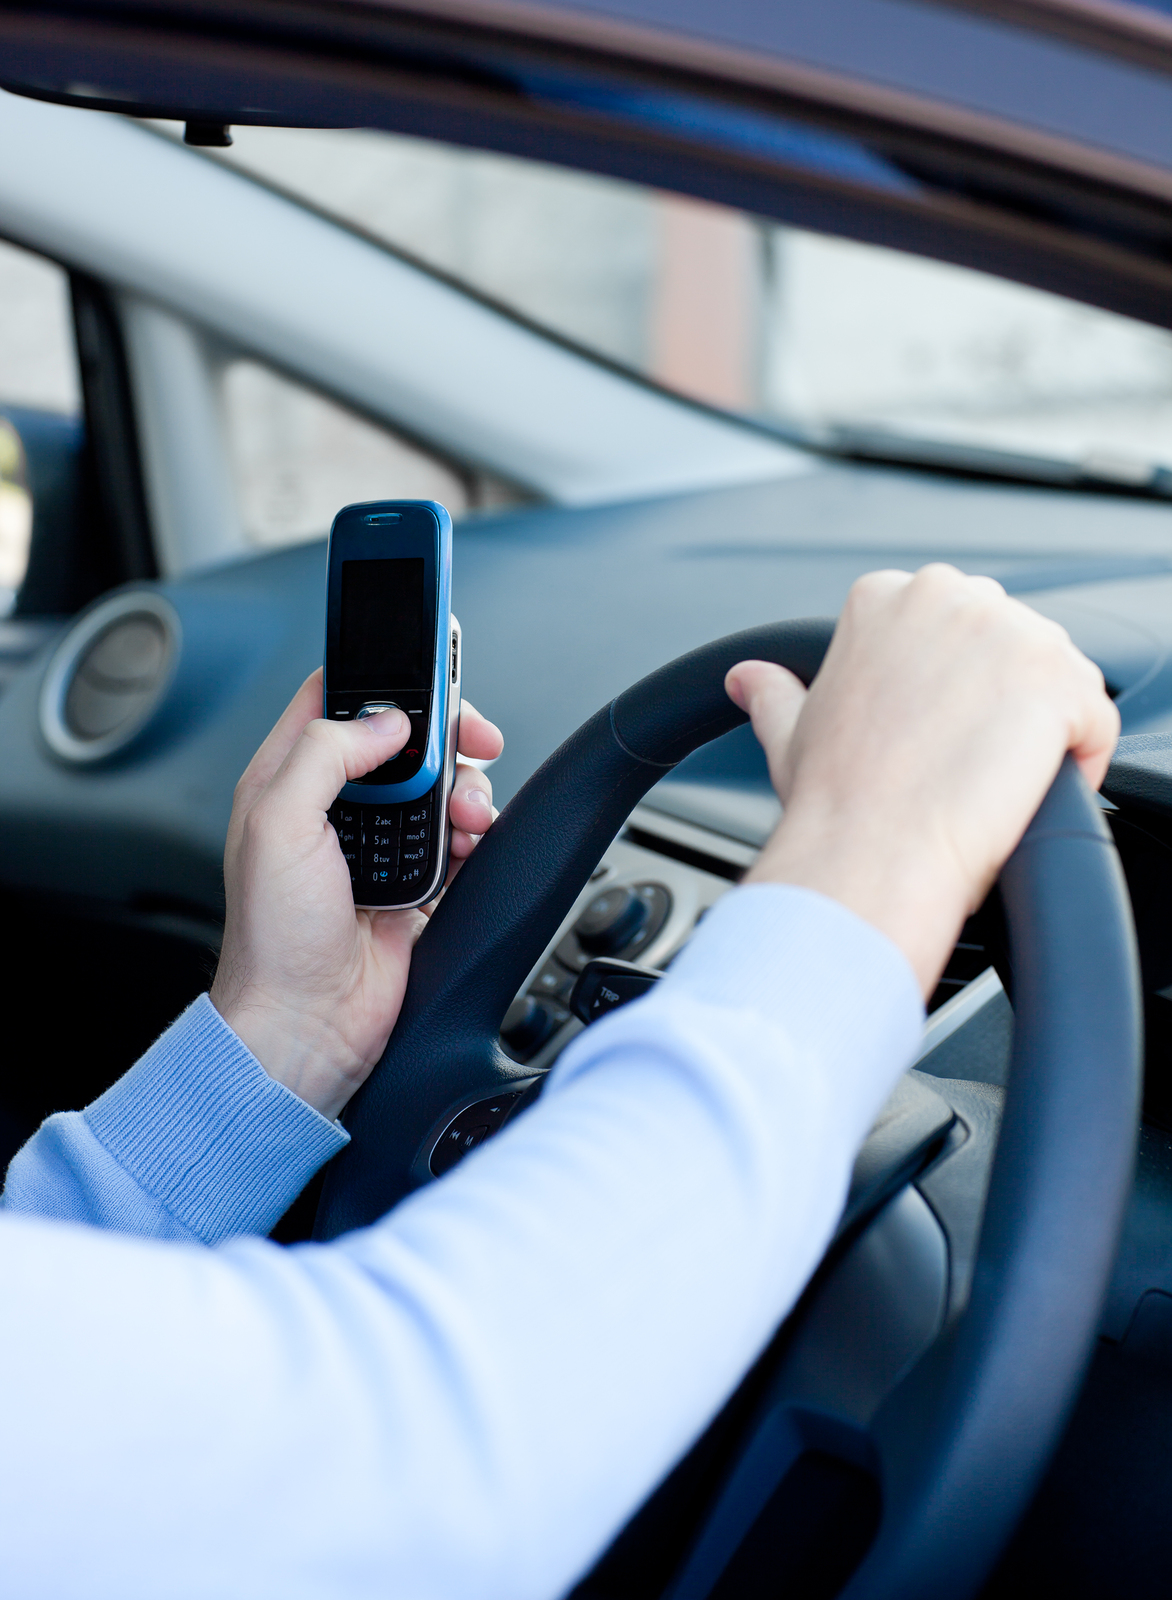 New-Dangers-of-Using-Smartphones-While-Driving.jpg